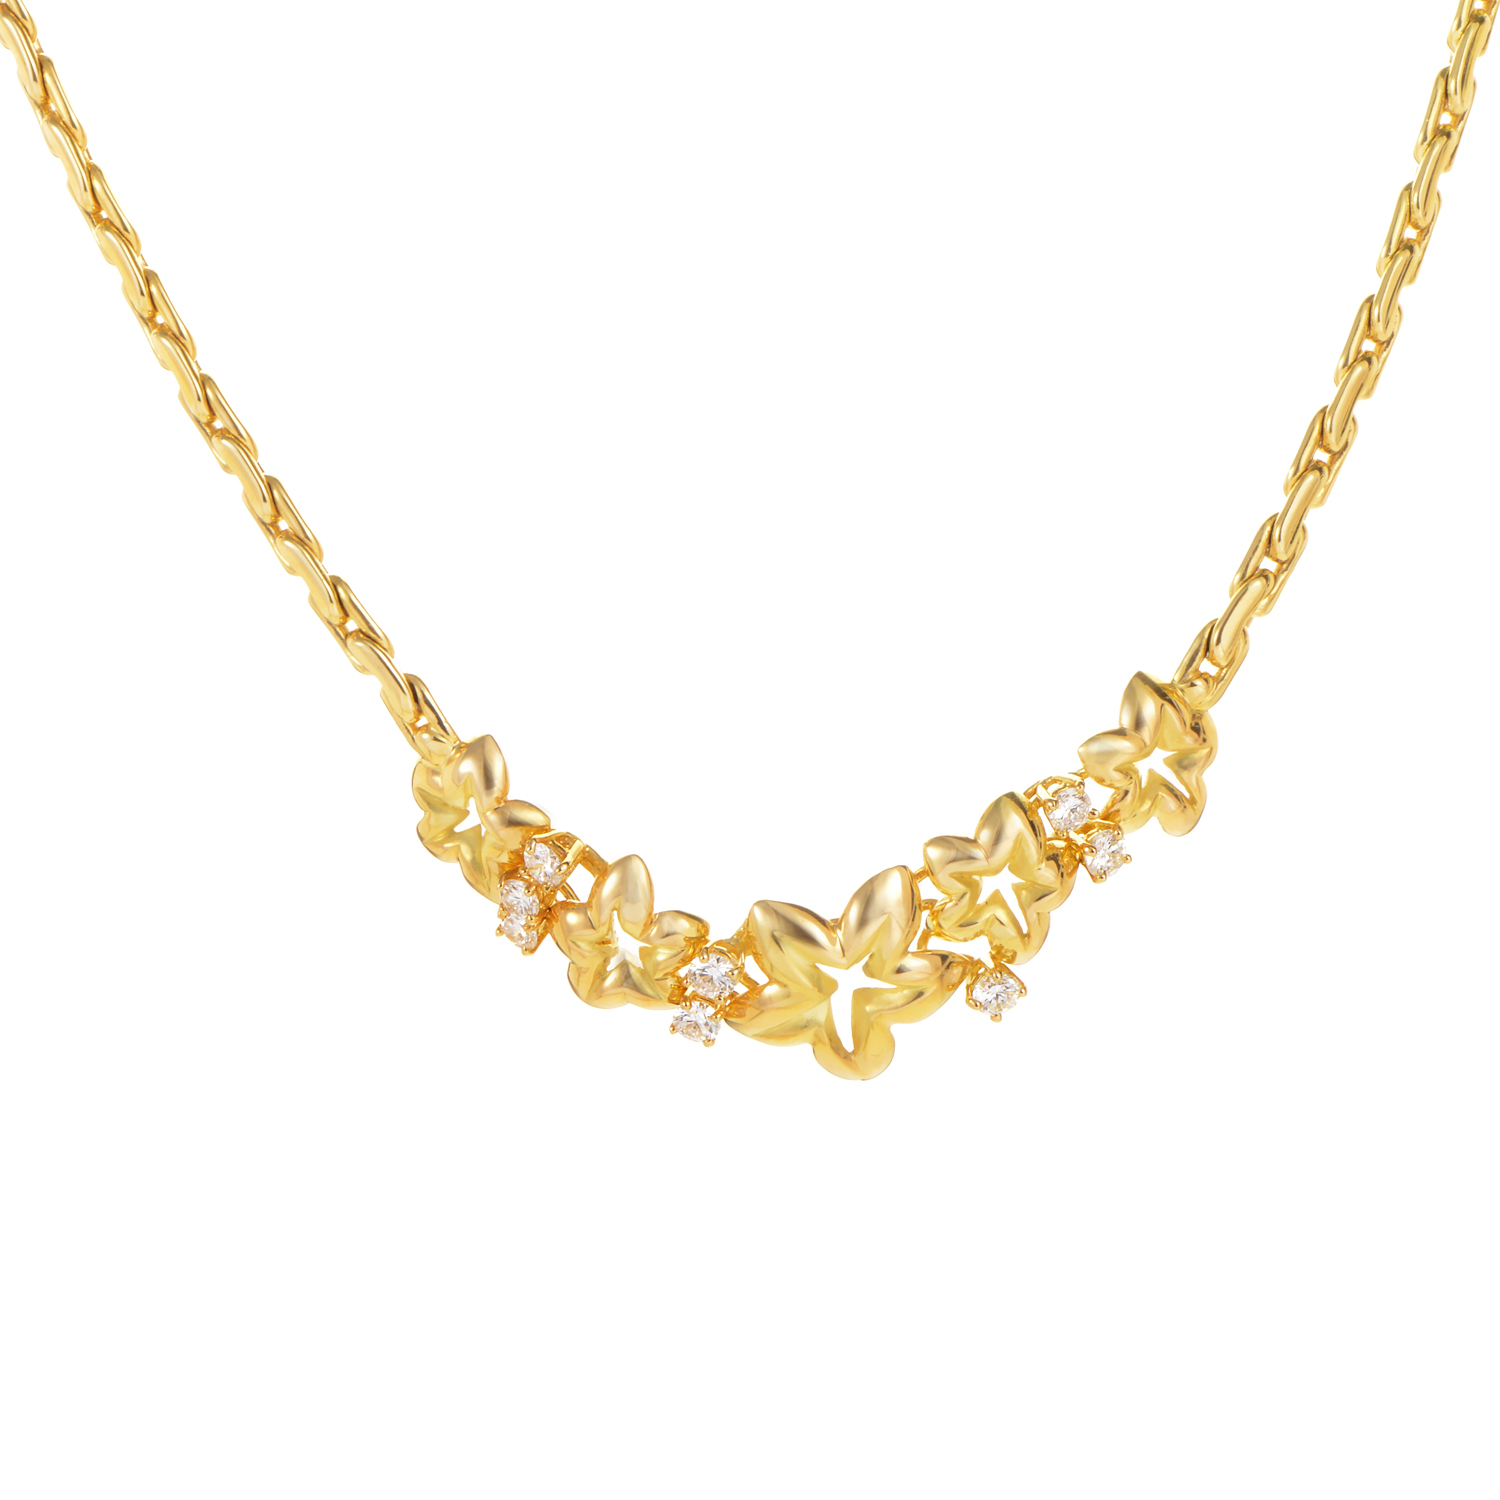 Chaumet 18K Yellow Gold Diamond Floral Star Necklace